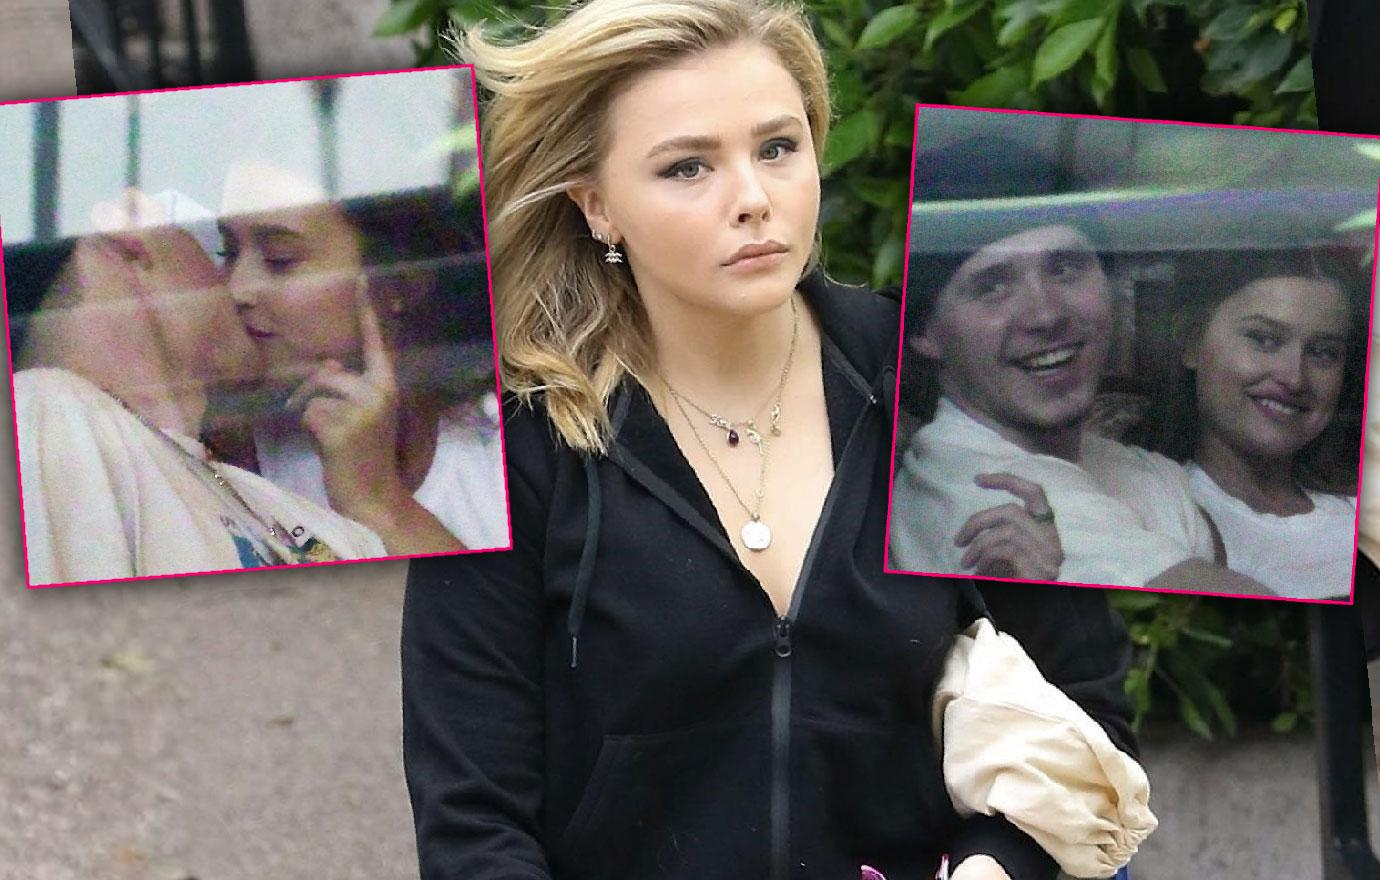 Brooklyn Beckham Chloe Moretz Split He Kisses Playboy Model